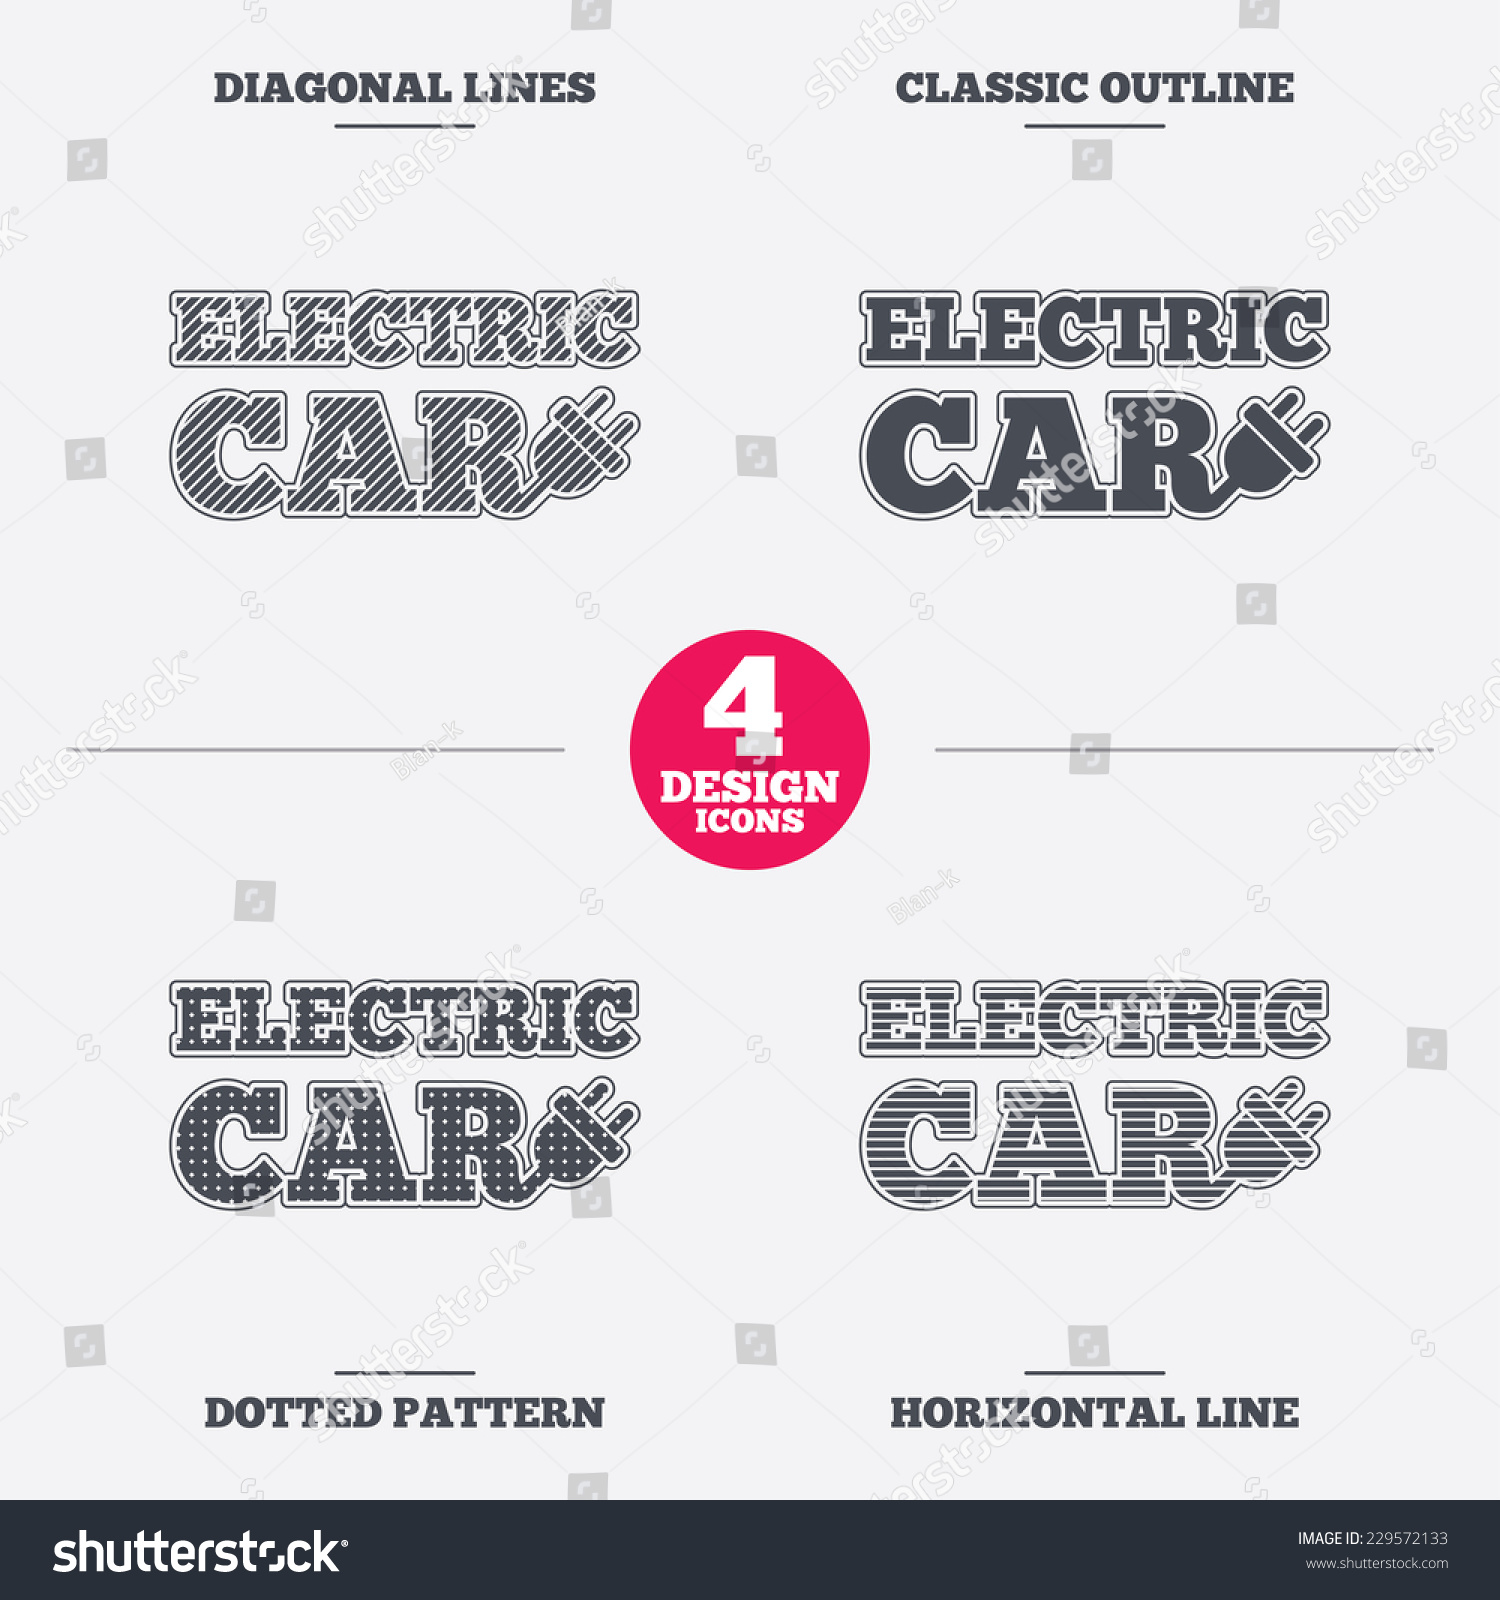 hight resolution of electric car sign icon electric vehicle transport symbol diagonal and horizontal lines classic